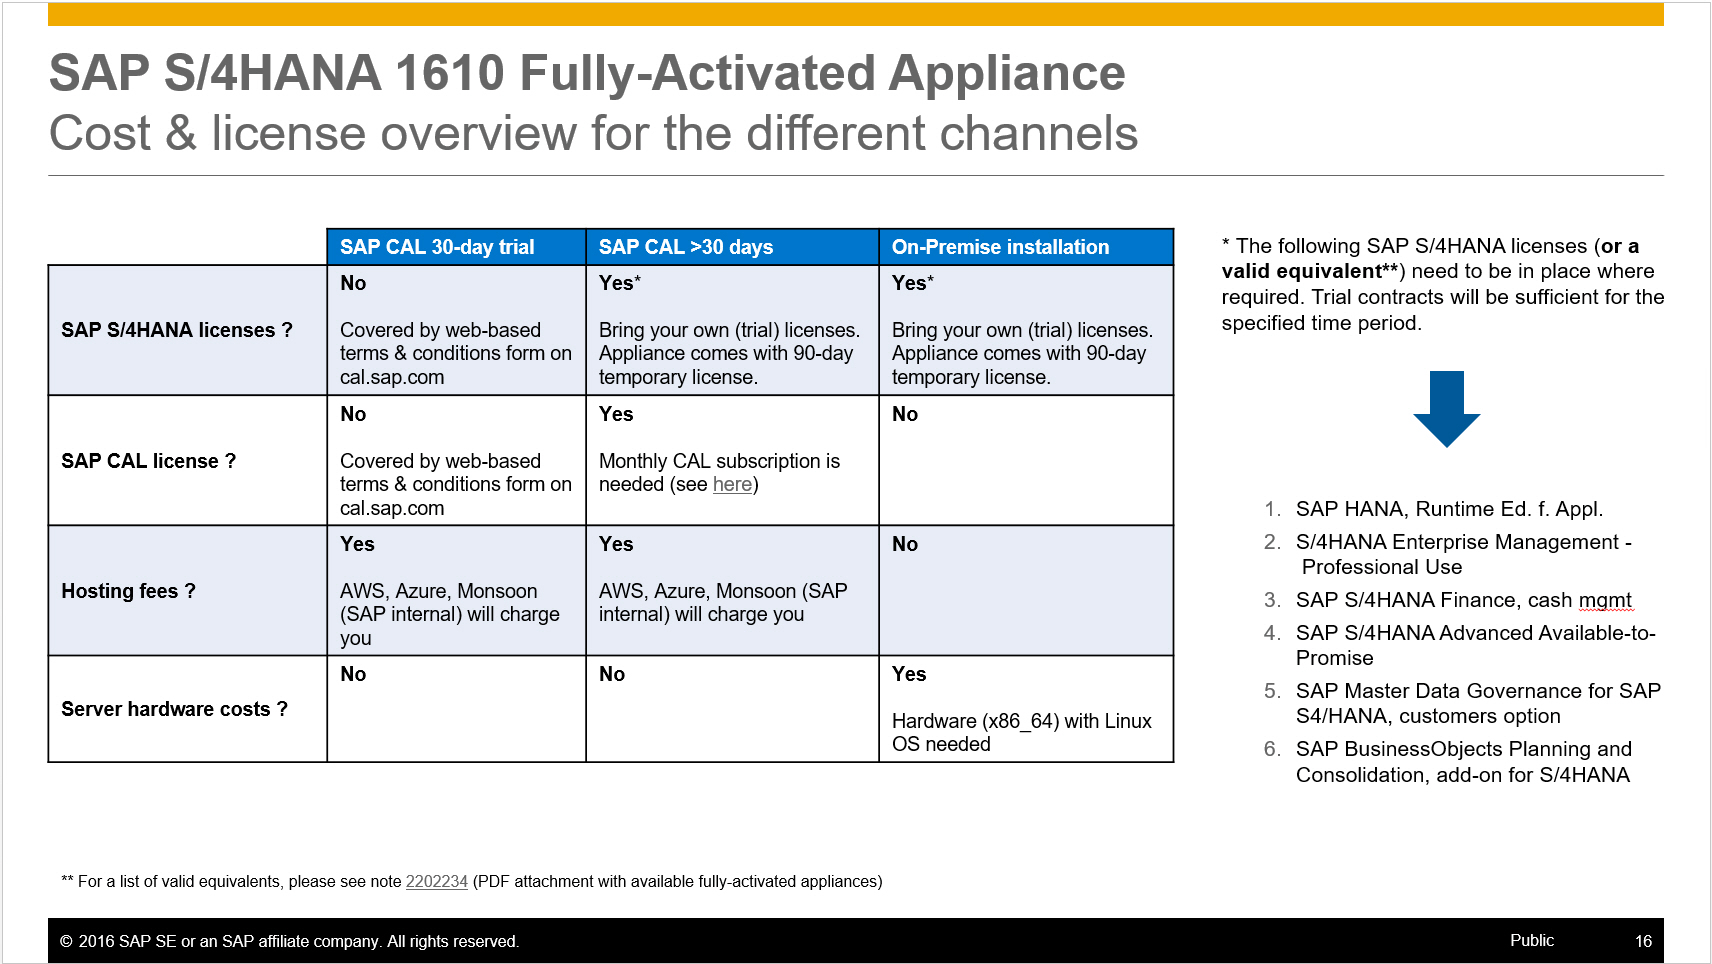 [Fig 4]: SAP S/4HANA 1610 Appliance – License & Cost Drivers